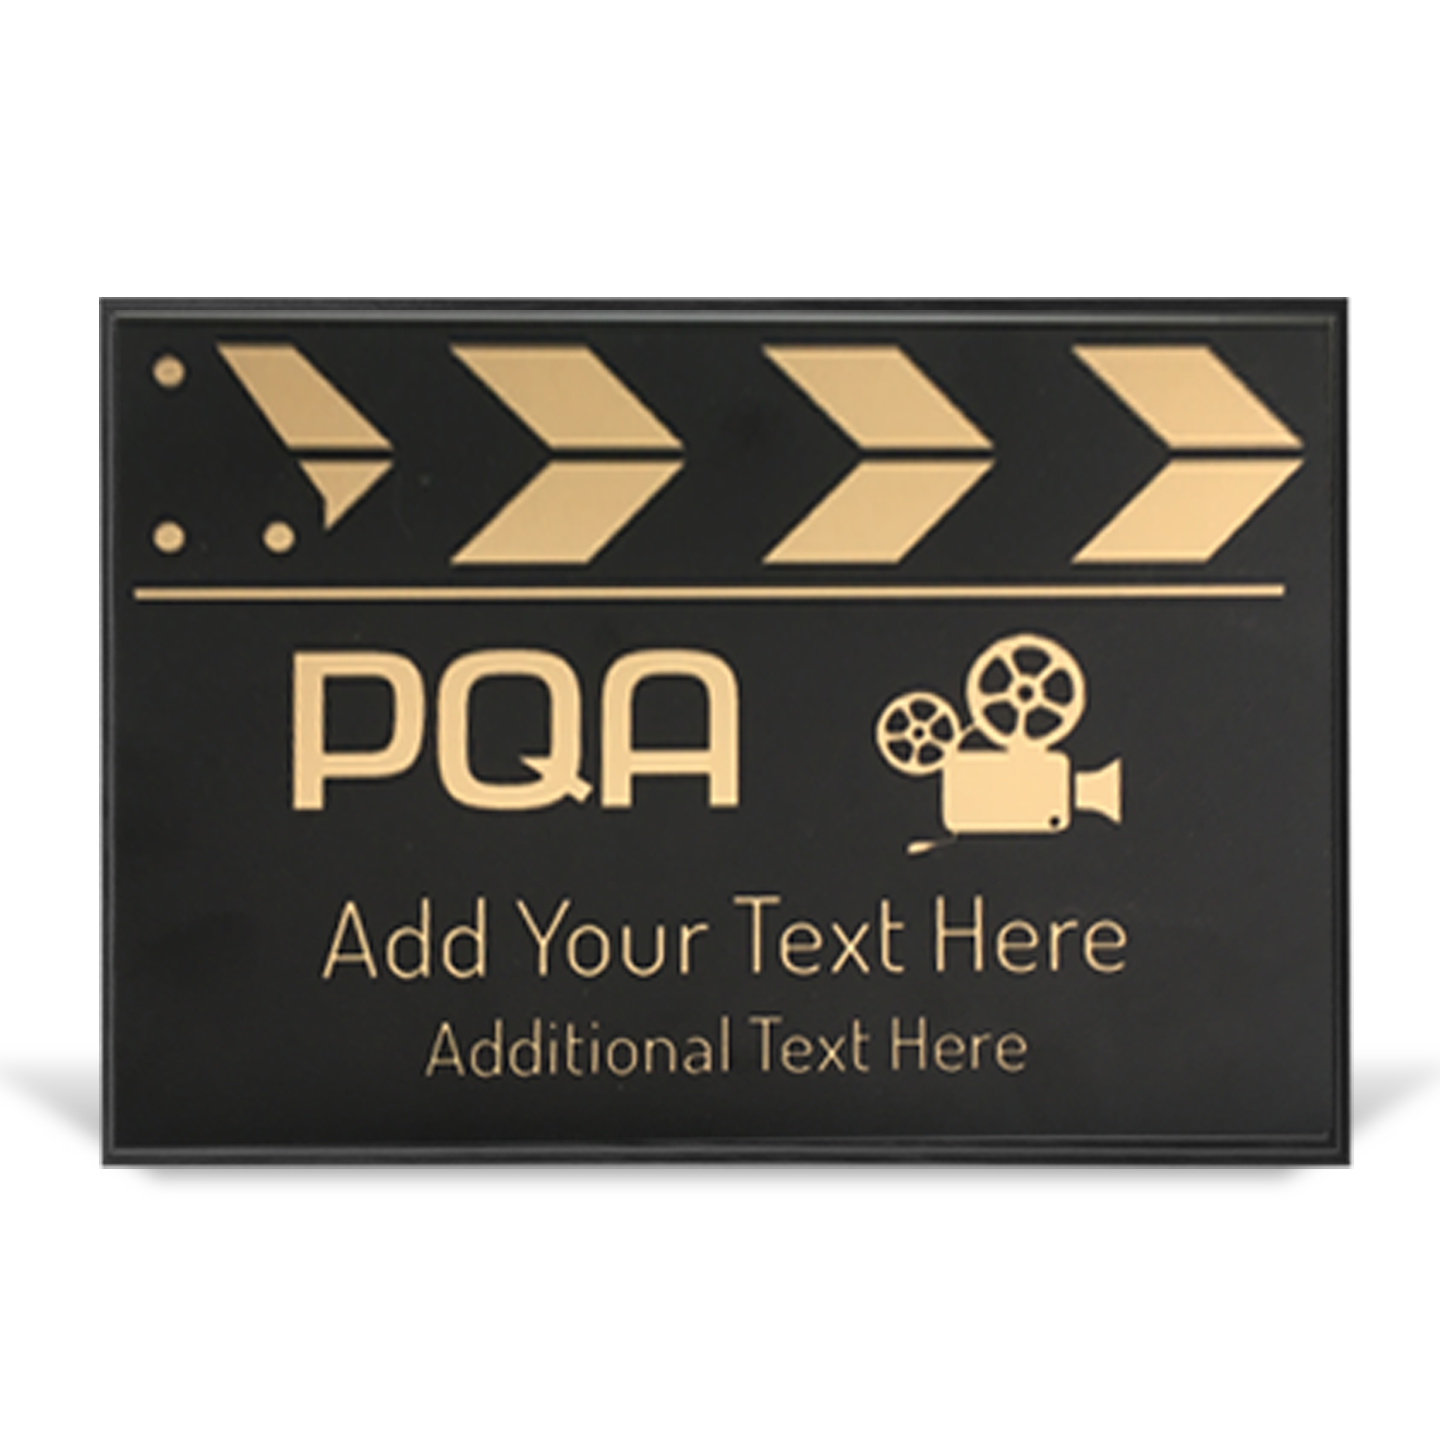 PQA Clapperboards